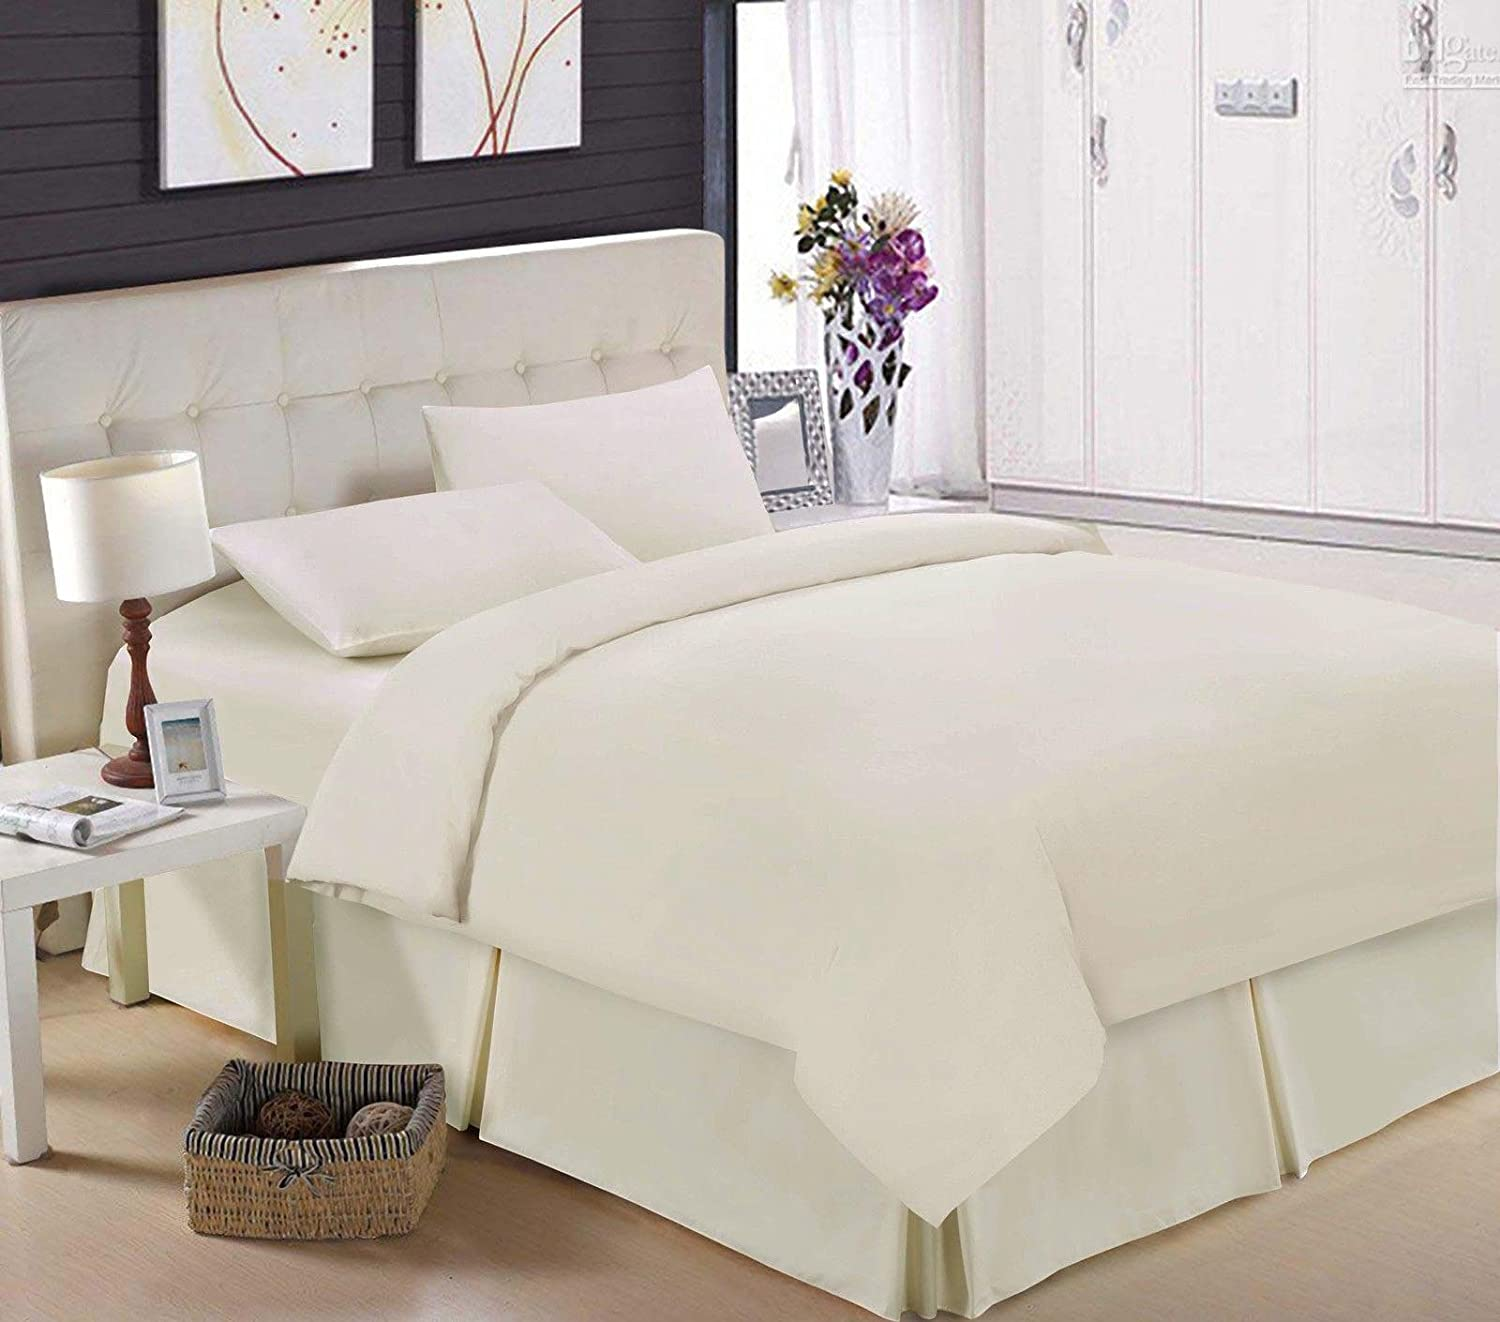 Small double, Black Base Valance Box Pleated Luxury 100/% Egyptian Cotton Percale 200 Thread count